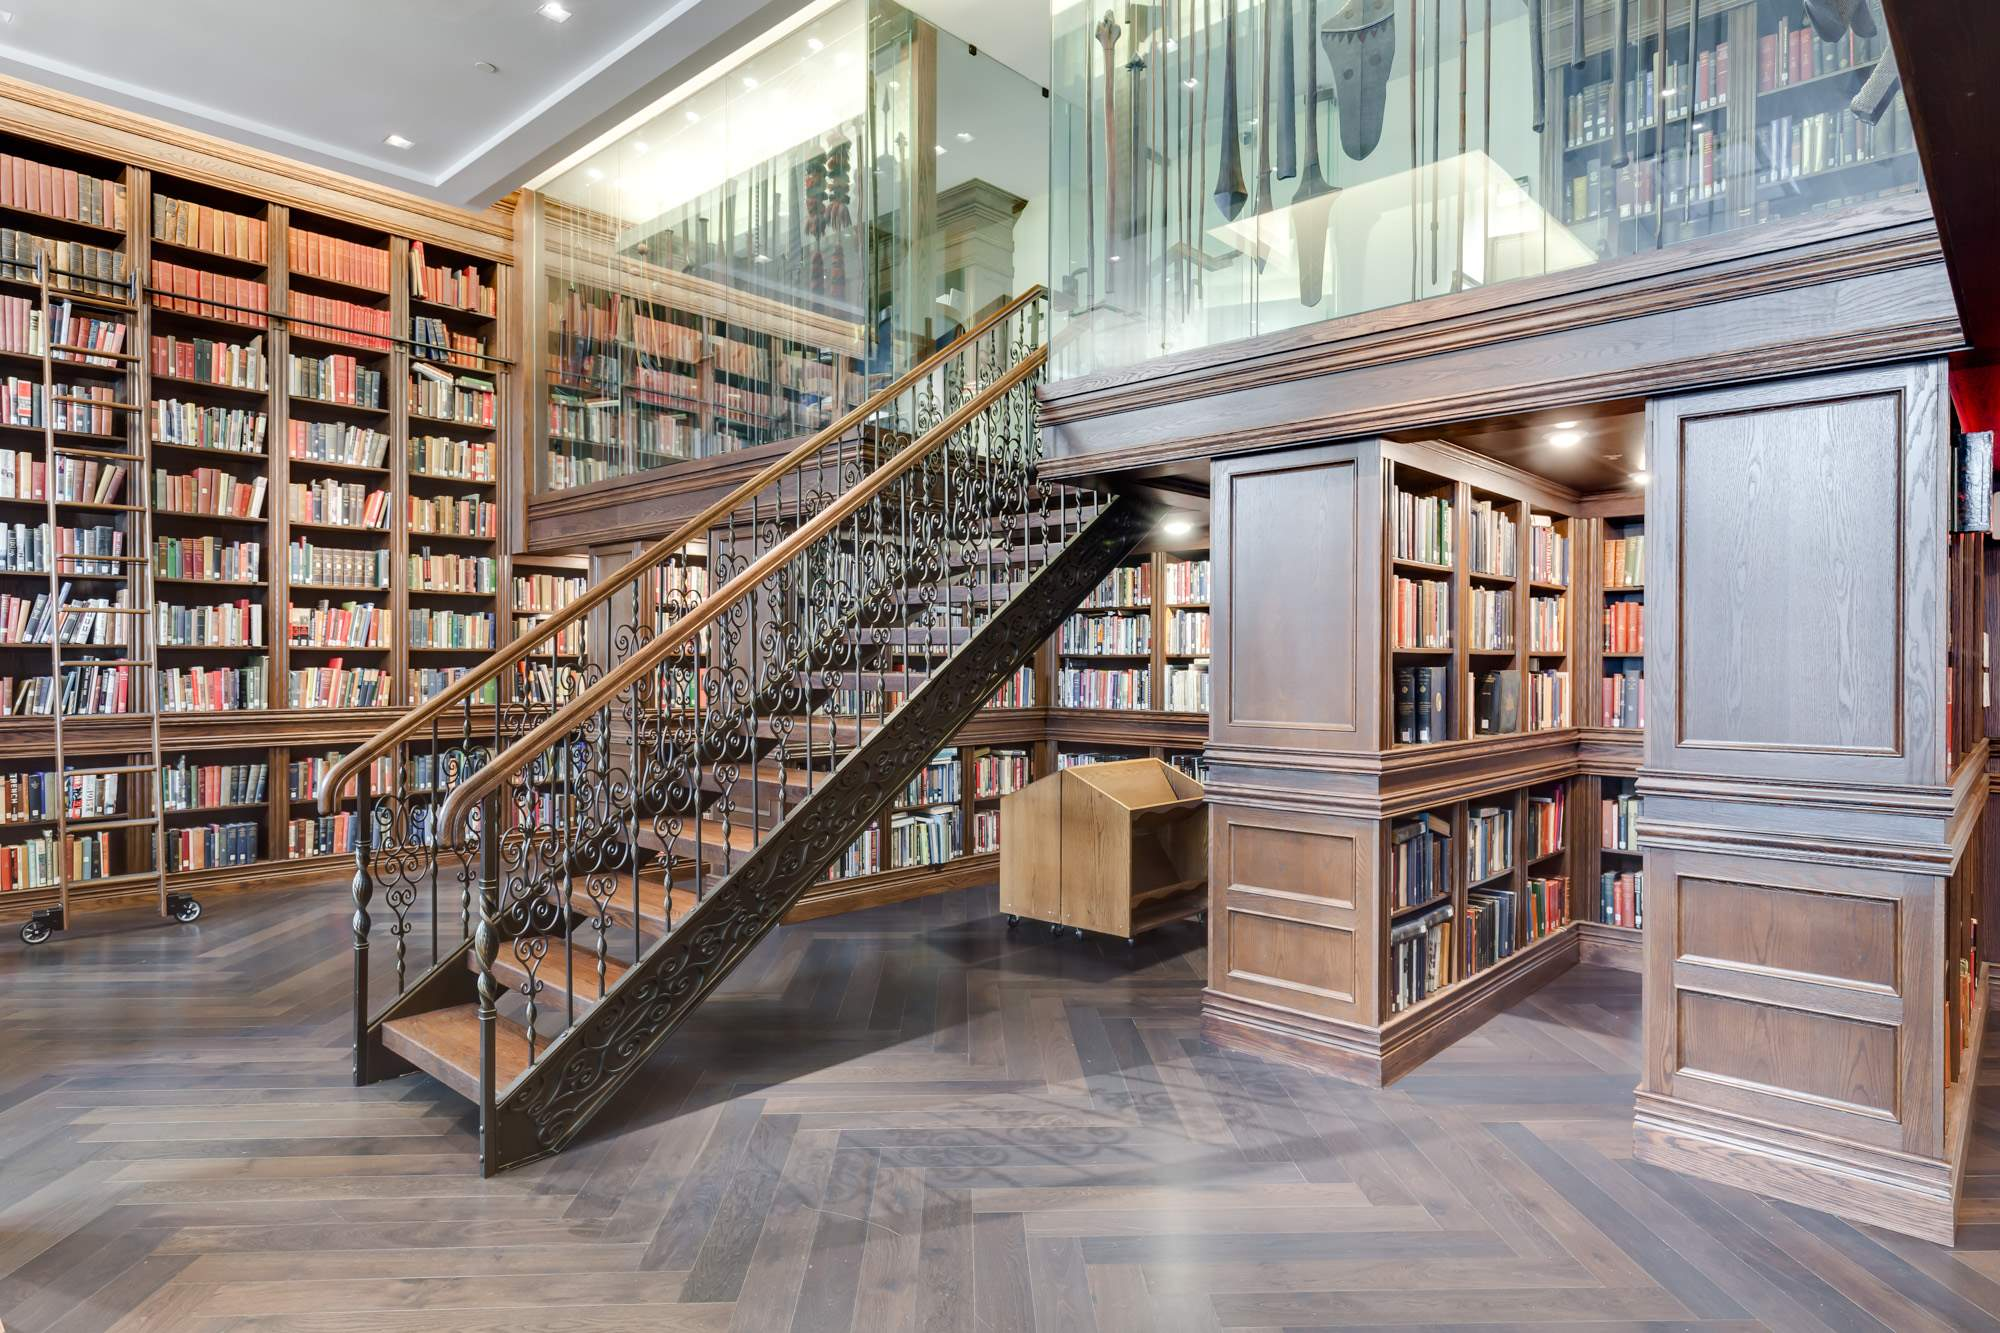 Library_-_Stairs